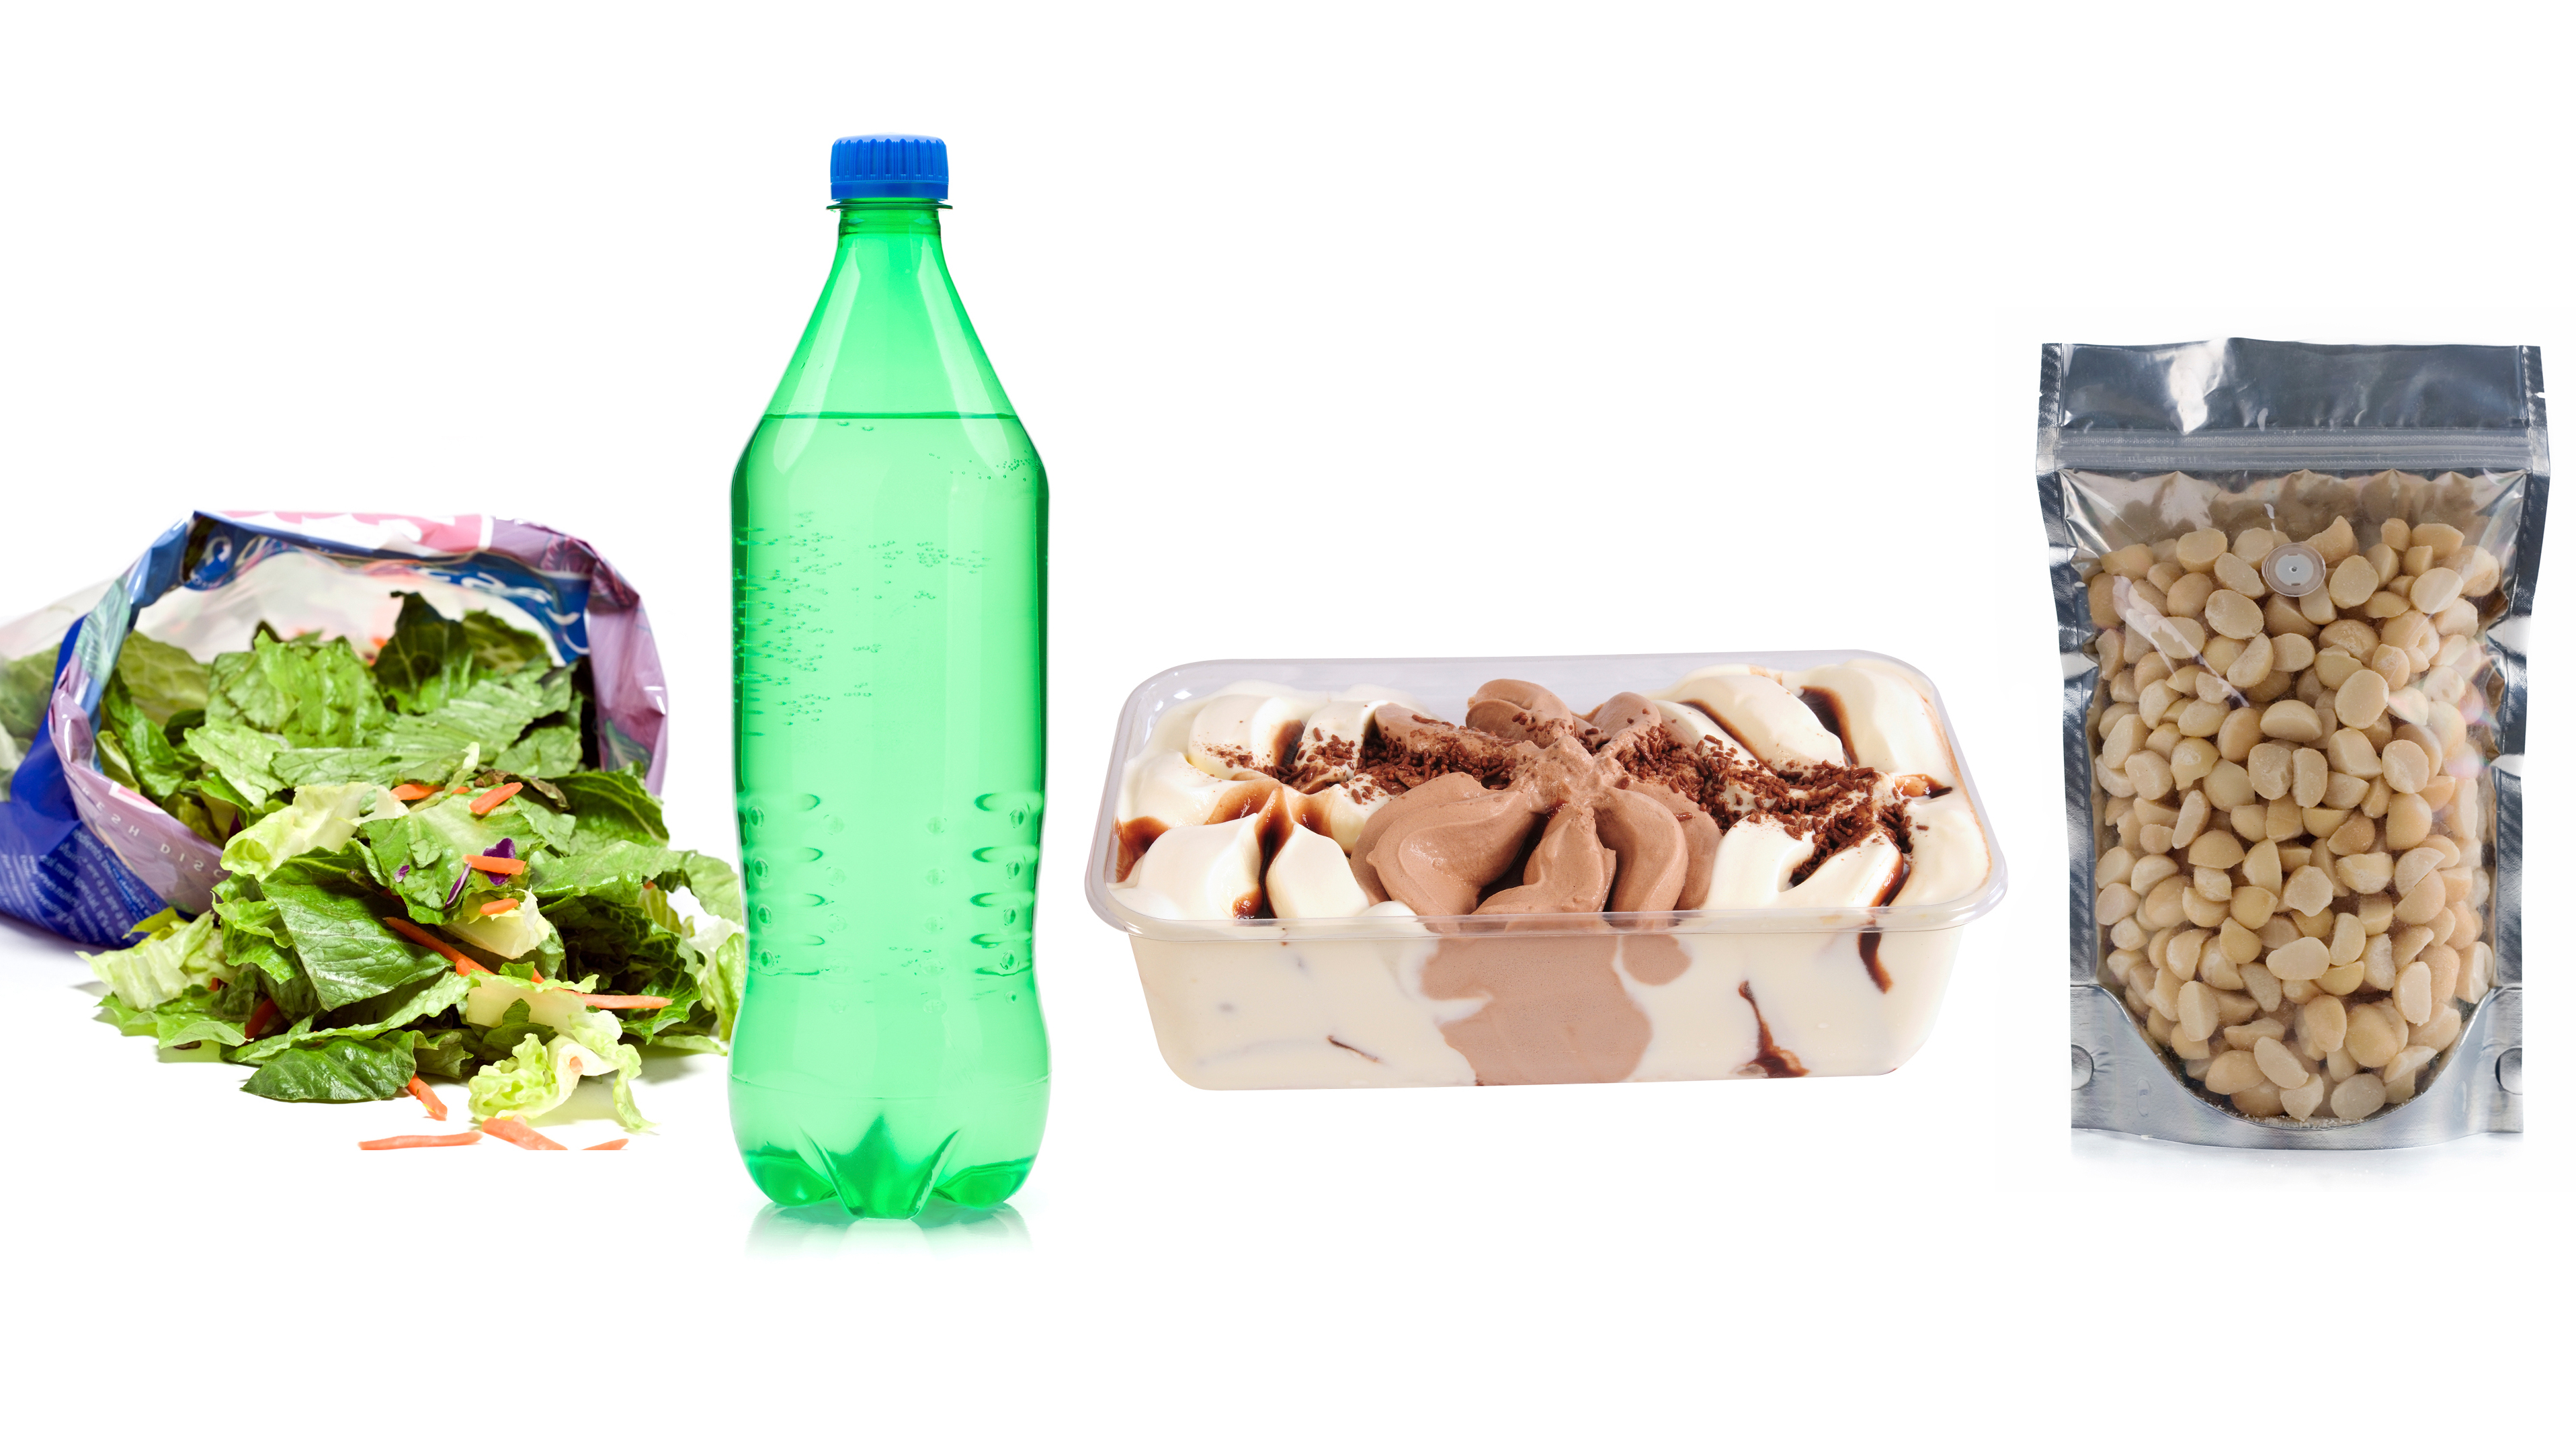 Food companies spend a lot of time and resources coming up with the perfect plastic packaging to keep their products fresh. Photo: iStockphoto